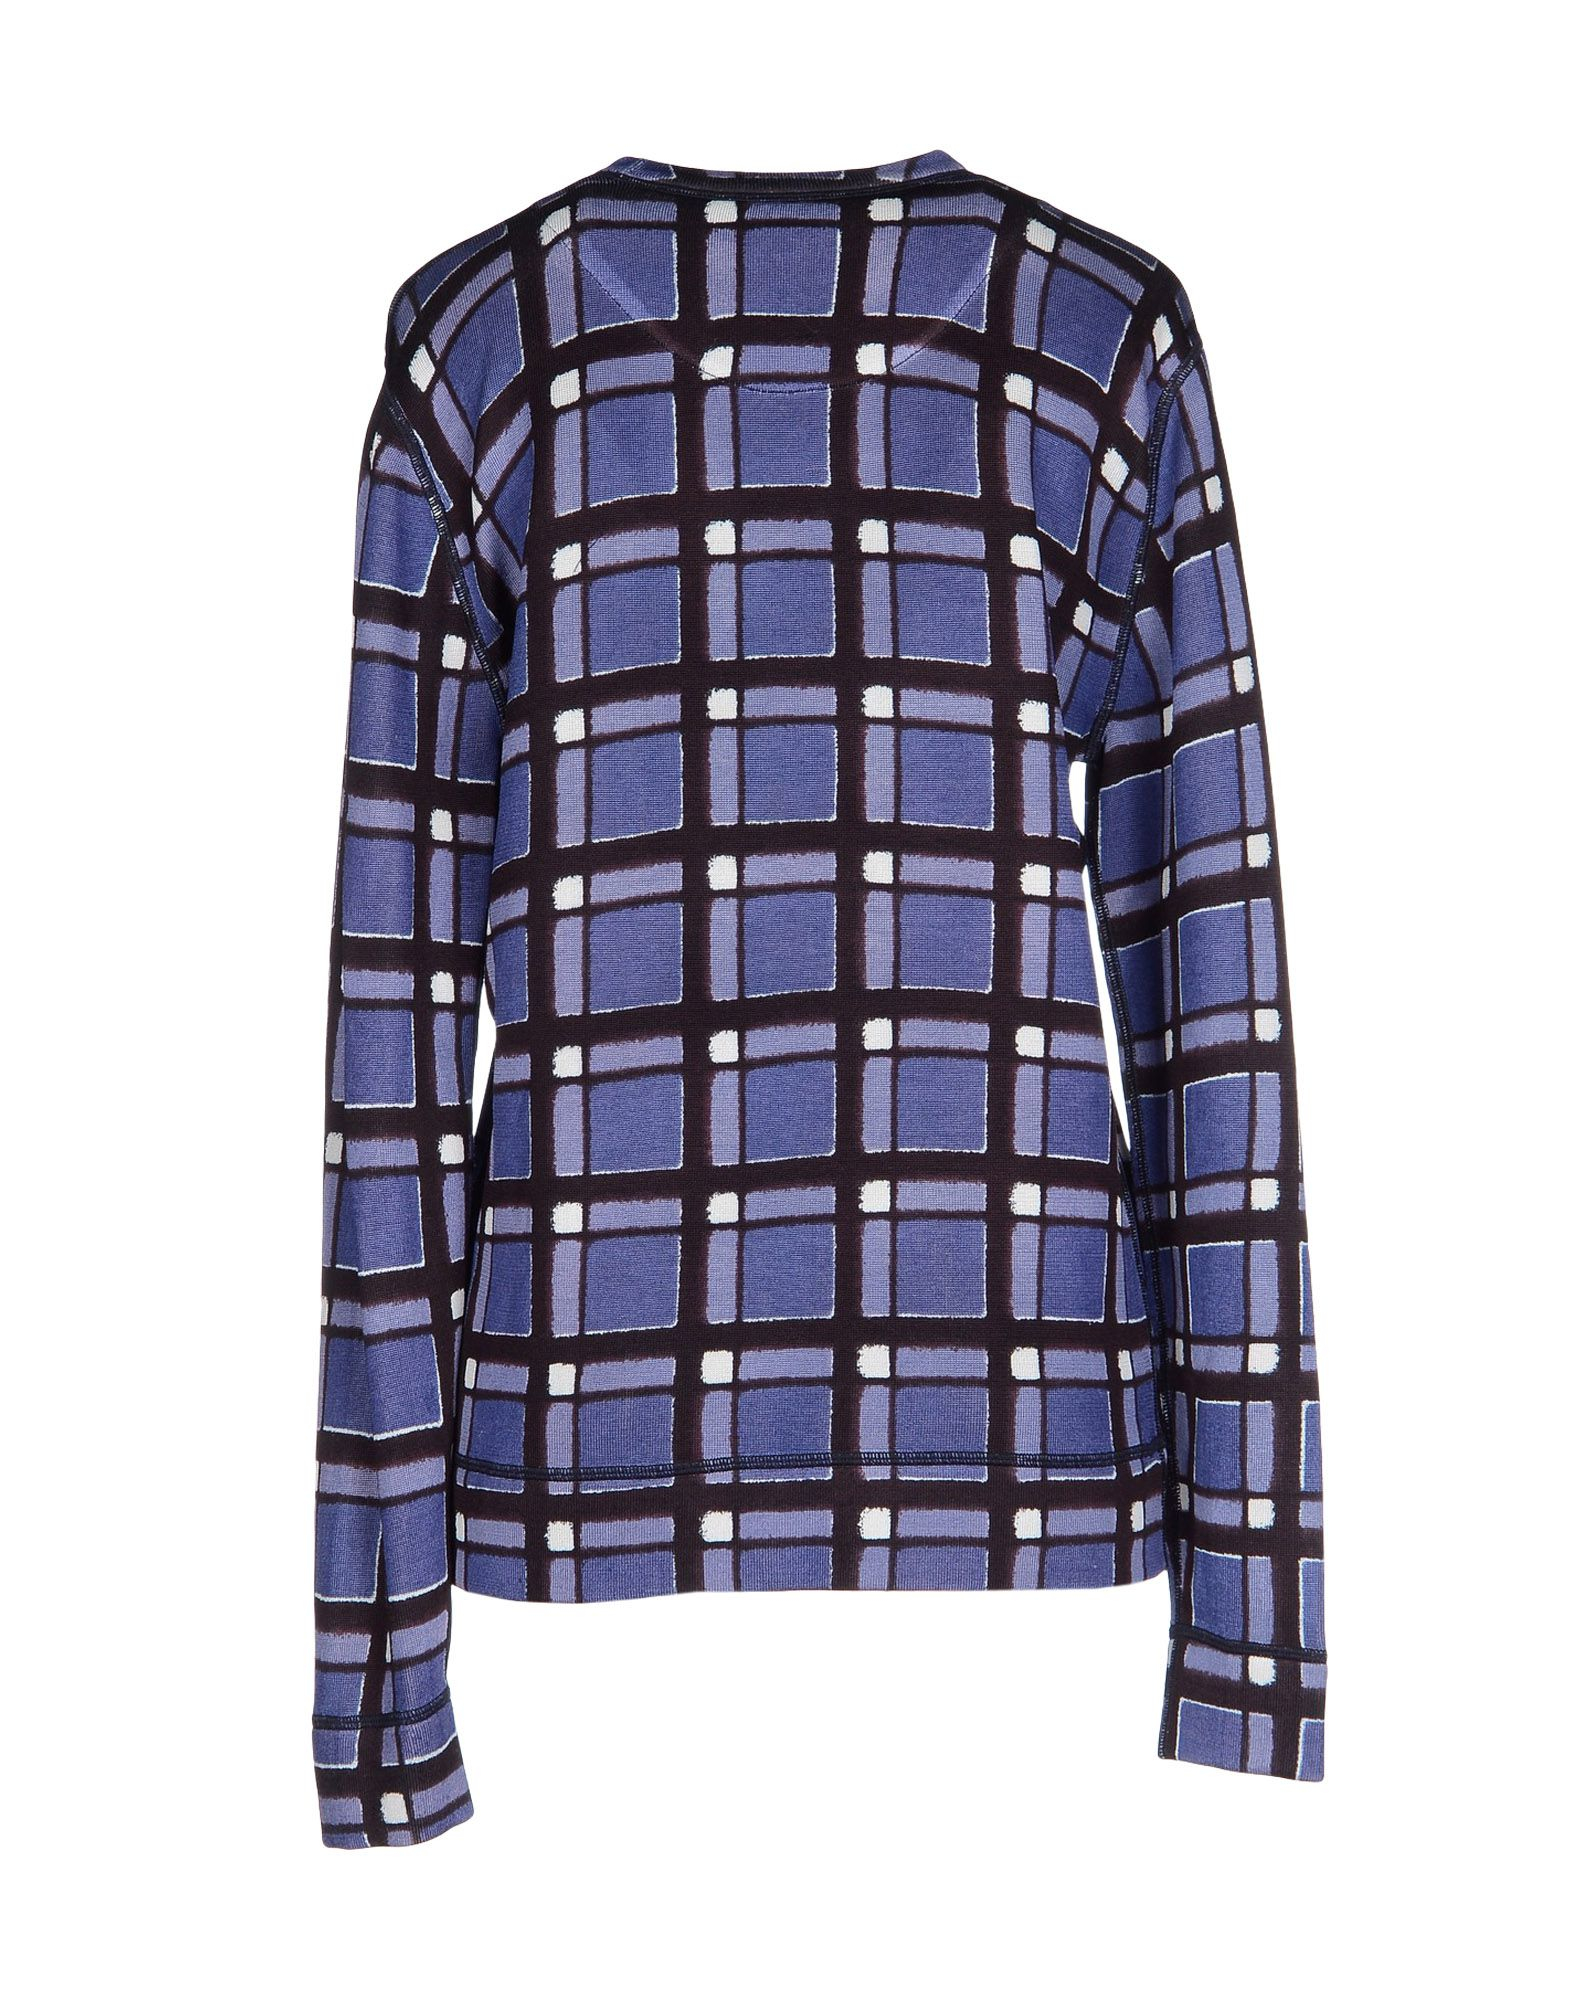 marc by marc jacobs sweater in blue lyst. Black Bedroom Furniture Sets. Home Design Ideas